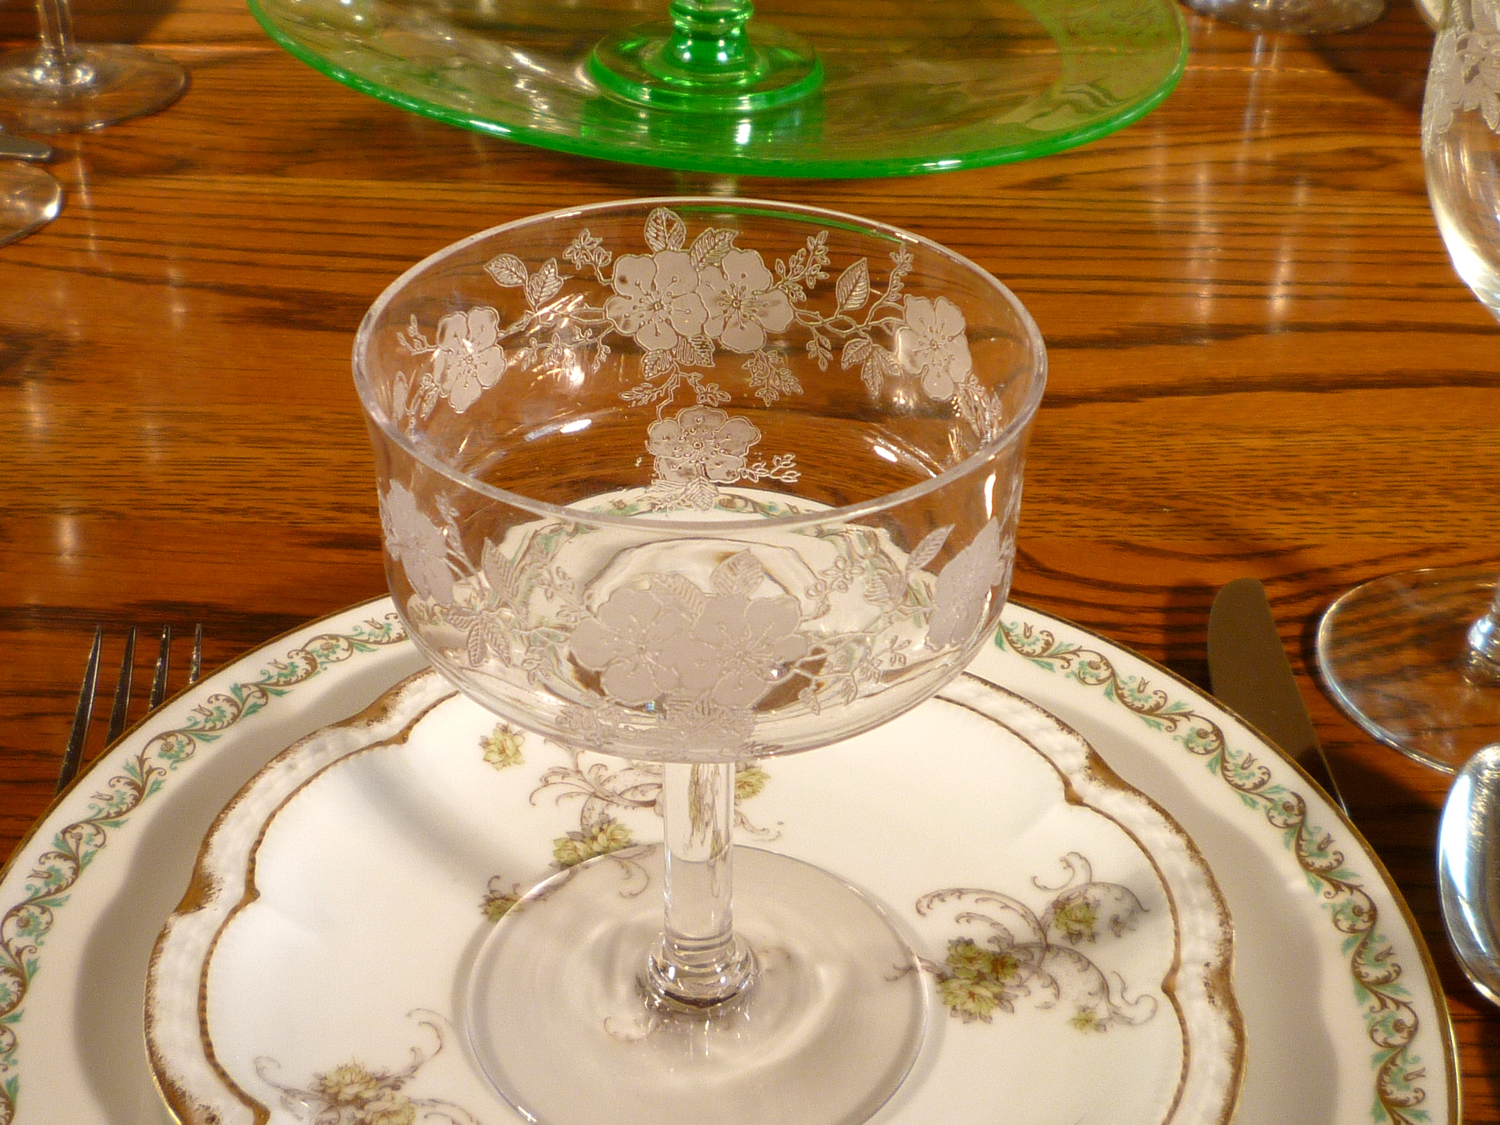 Haviland Limoges China Dinnerware Monongah Etched Crystal